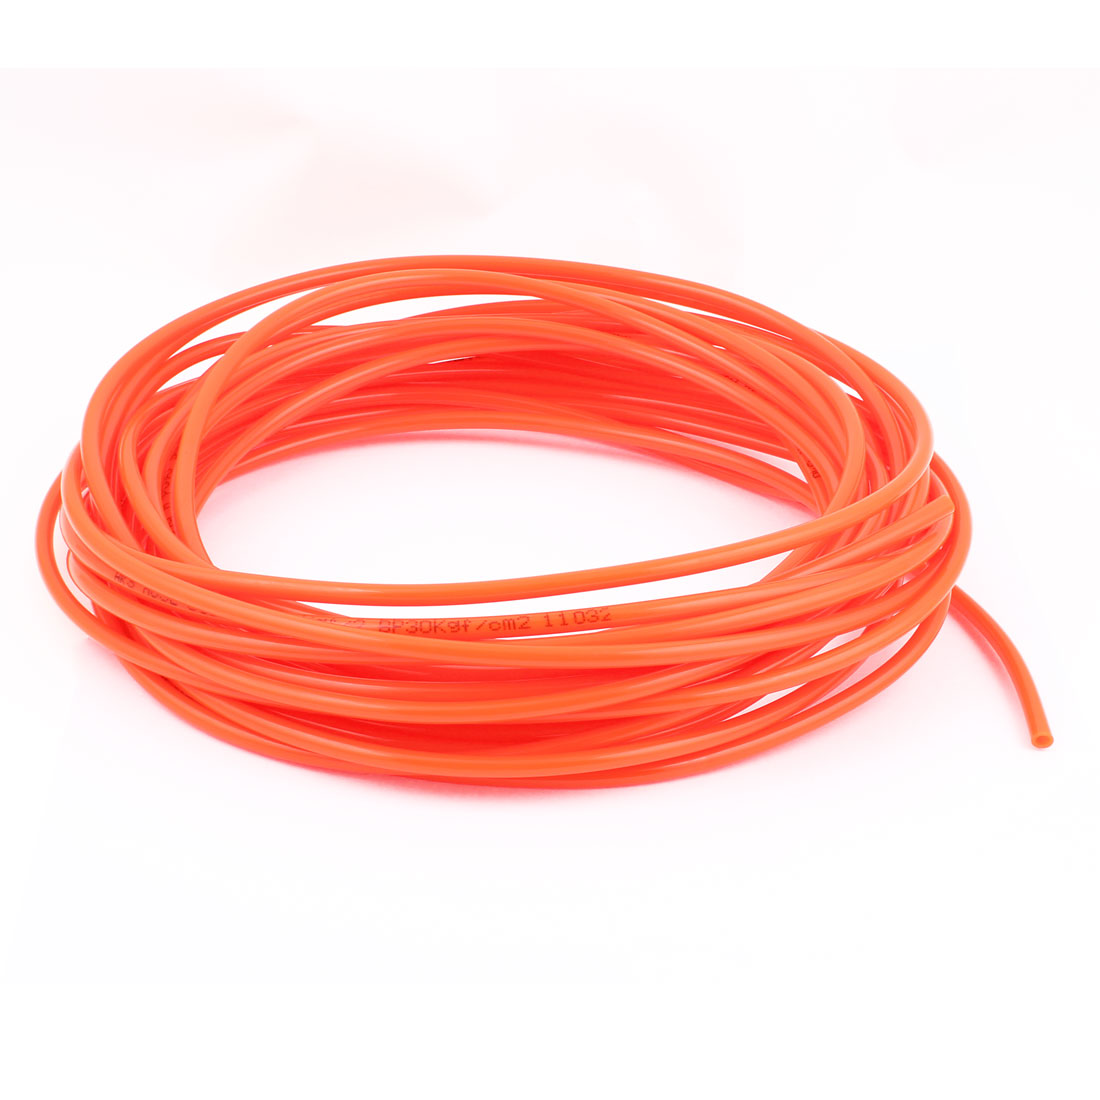 6mm x 4mm Orange Red Pneumatic Polyurethane Hose PU Tube 15M 49.2Ft